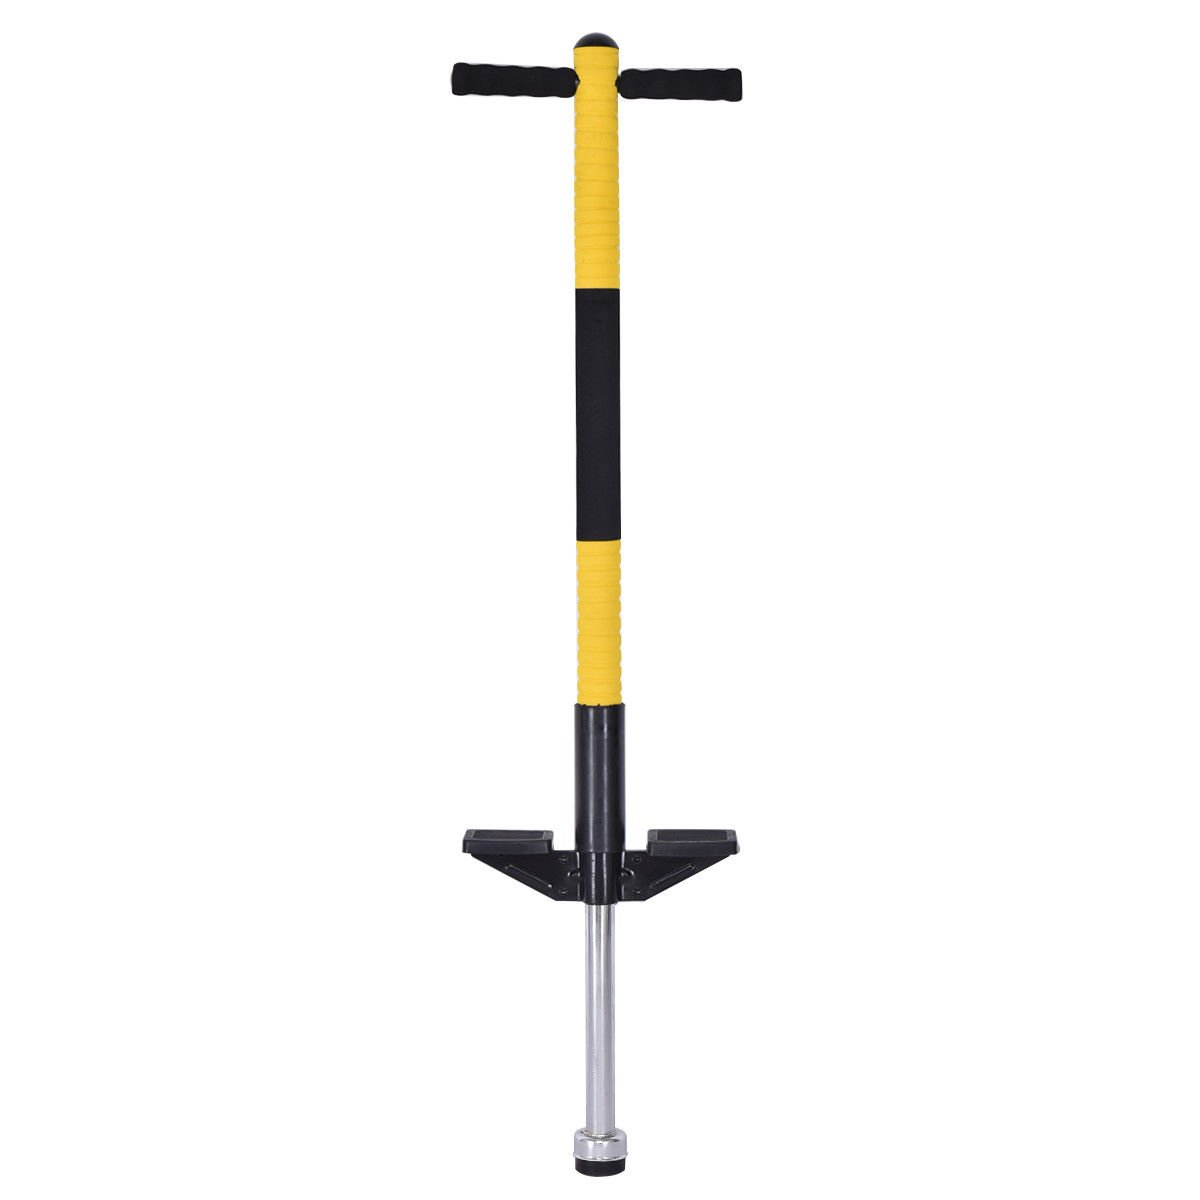 Goplus Pogo Stick Jumping Stick Jumper for Age 5 to 9 Up to 85lbs Perfect Kids Gift for Balance Training (Yellow)